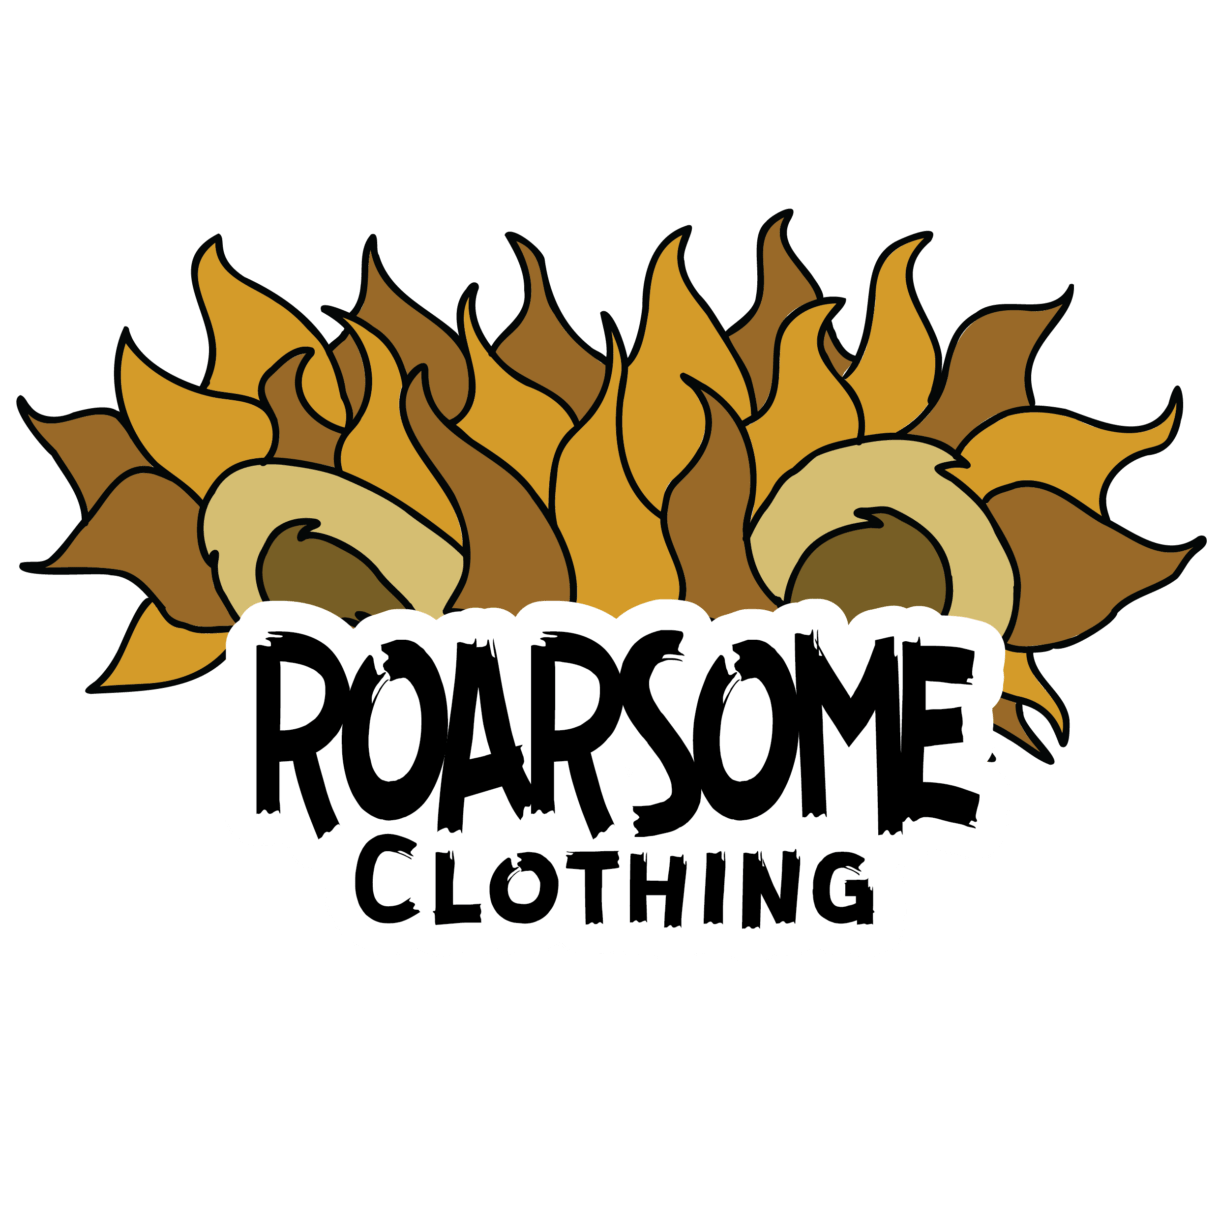 Roarsome Clothing